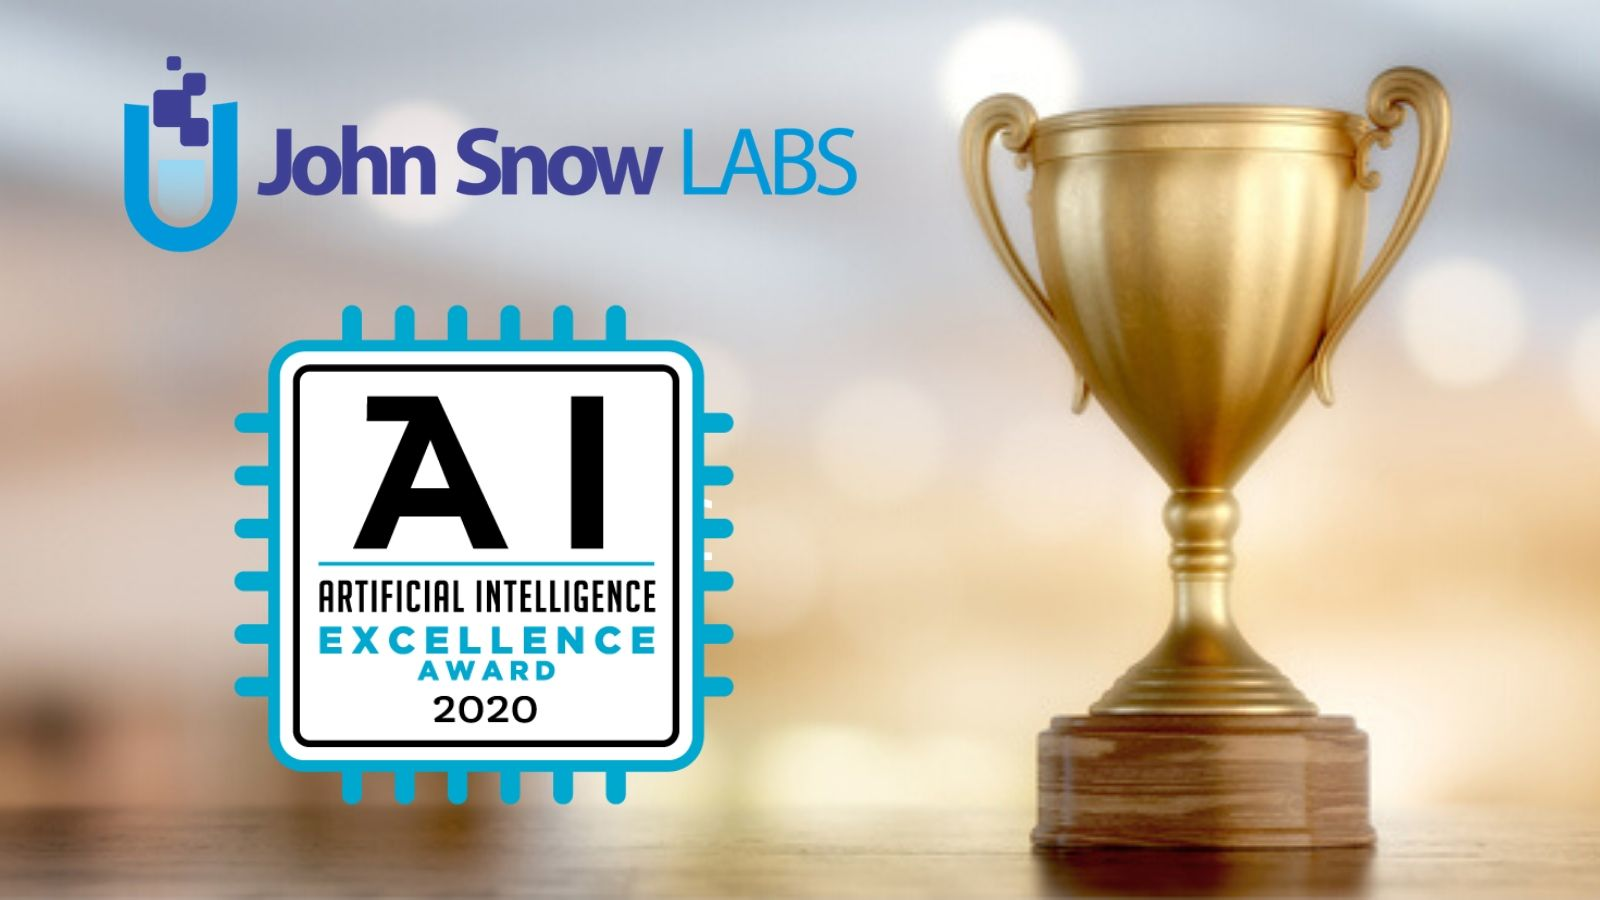 John Snow Labs wins the 2020 Artificial Intelligence Excellence Award